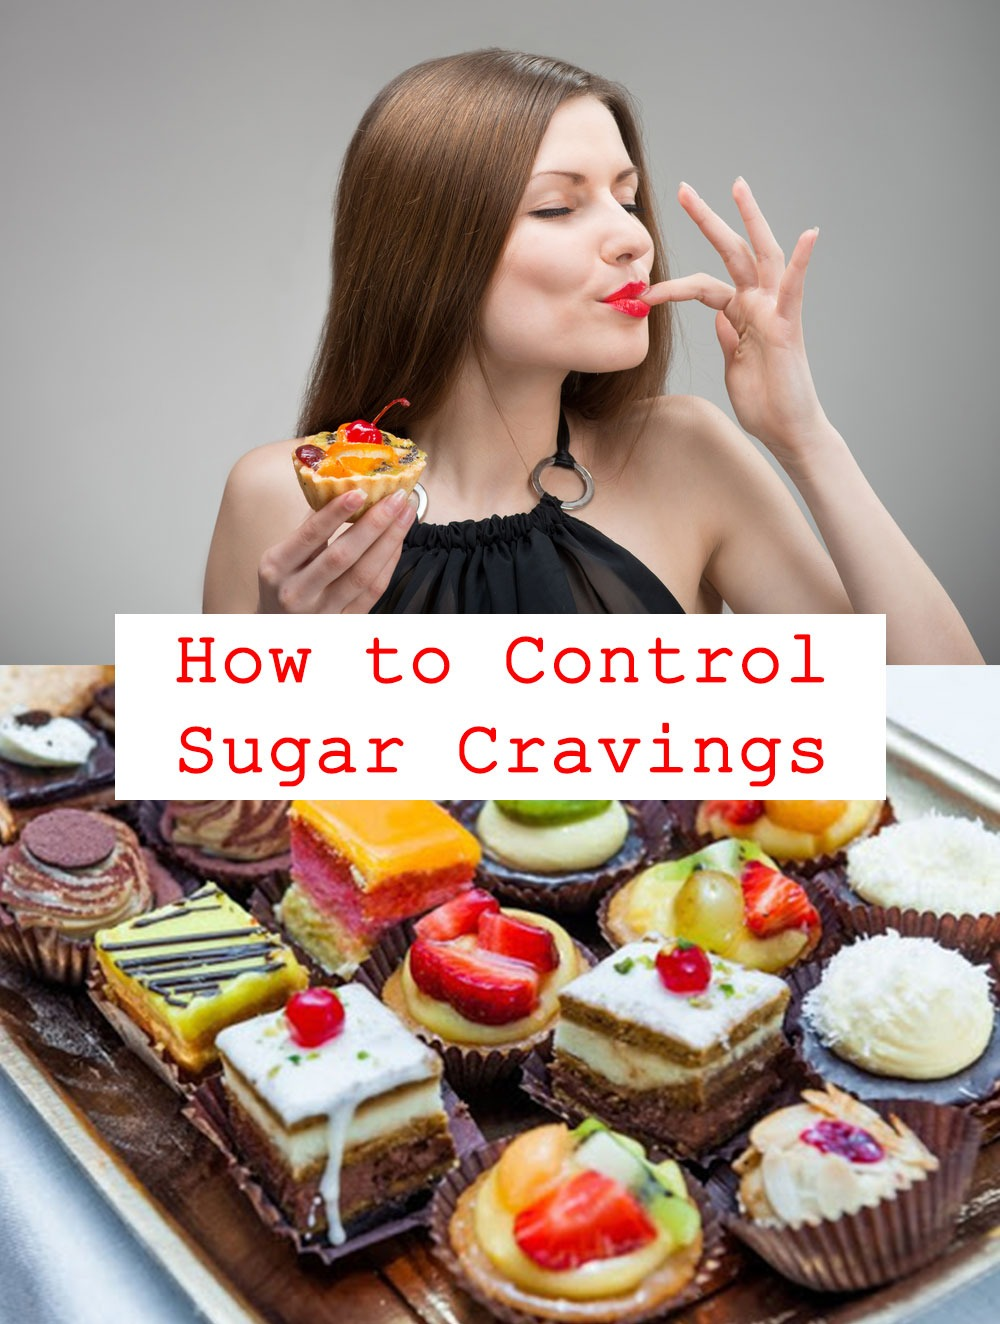 How to Control Sugar Cravings